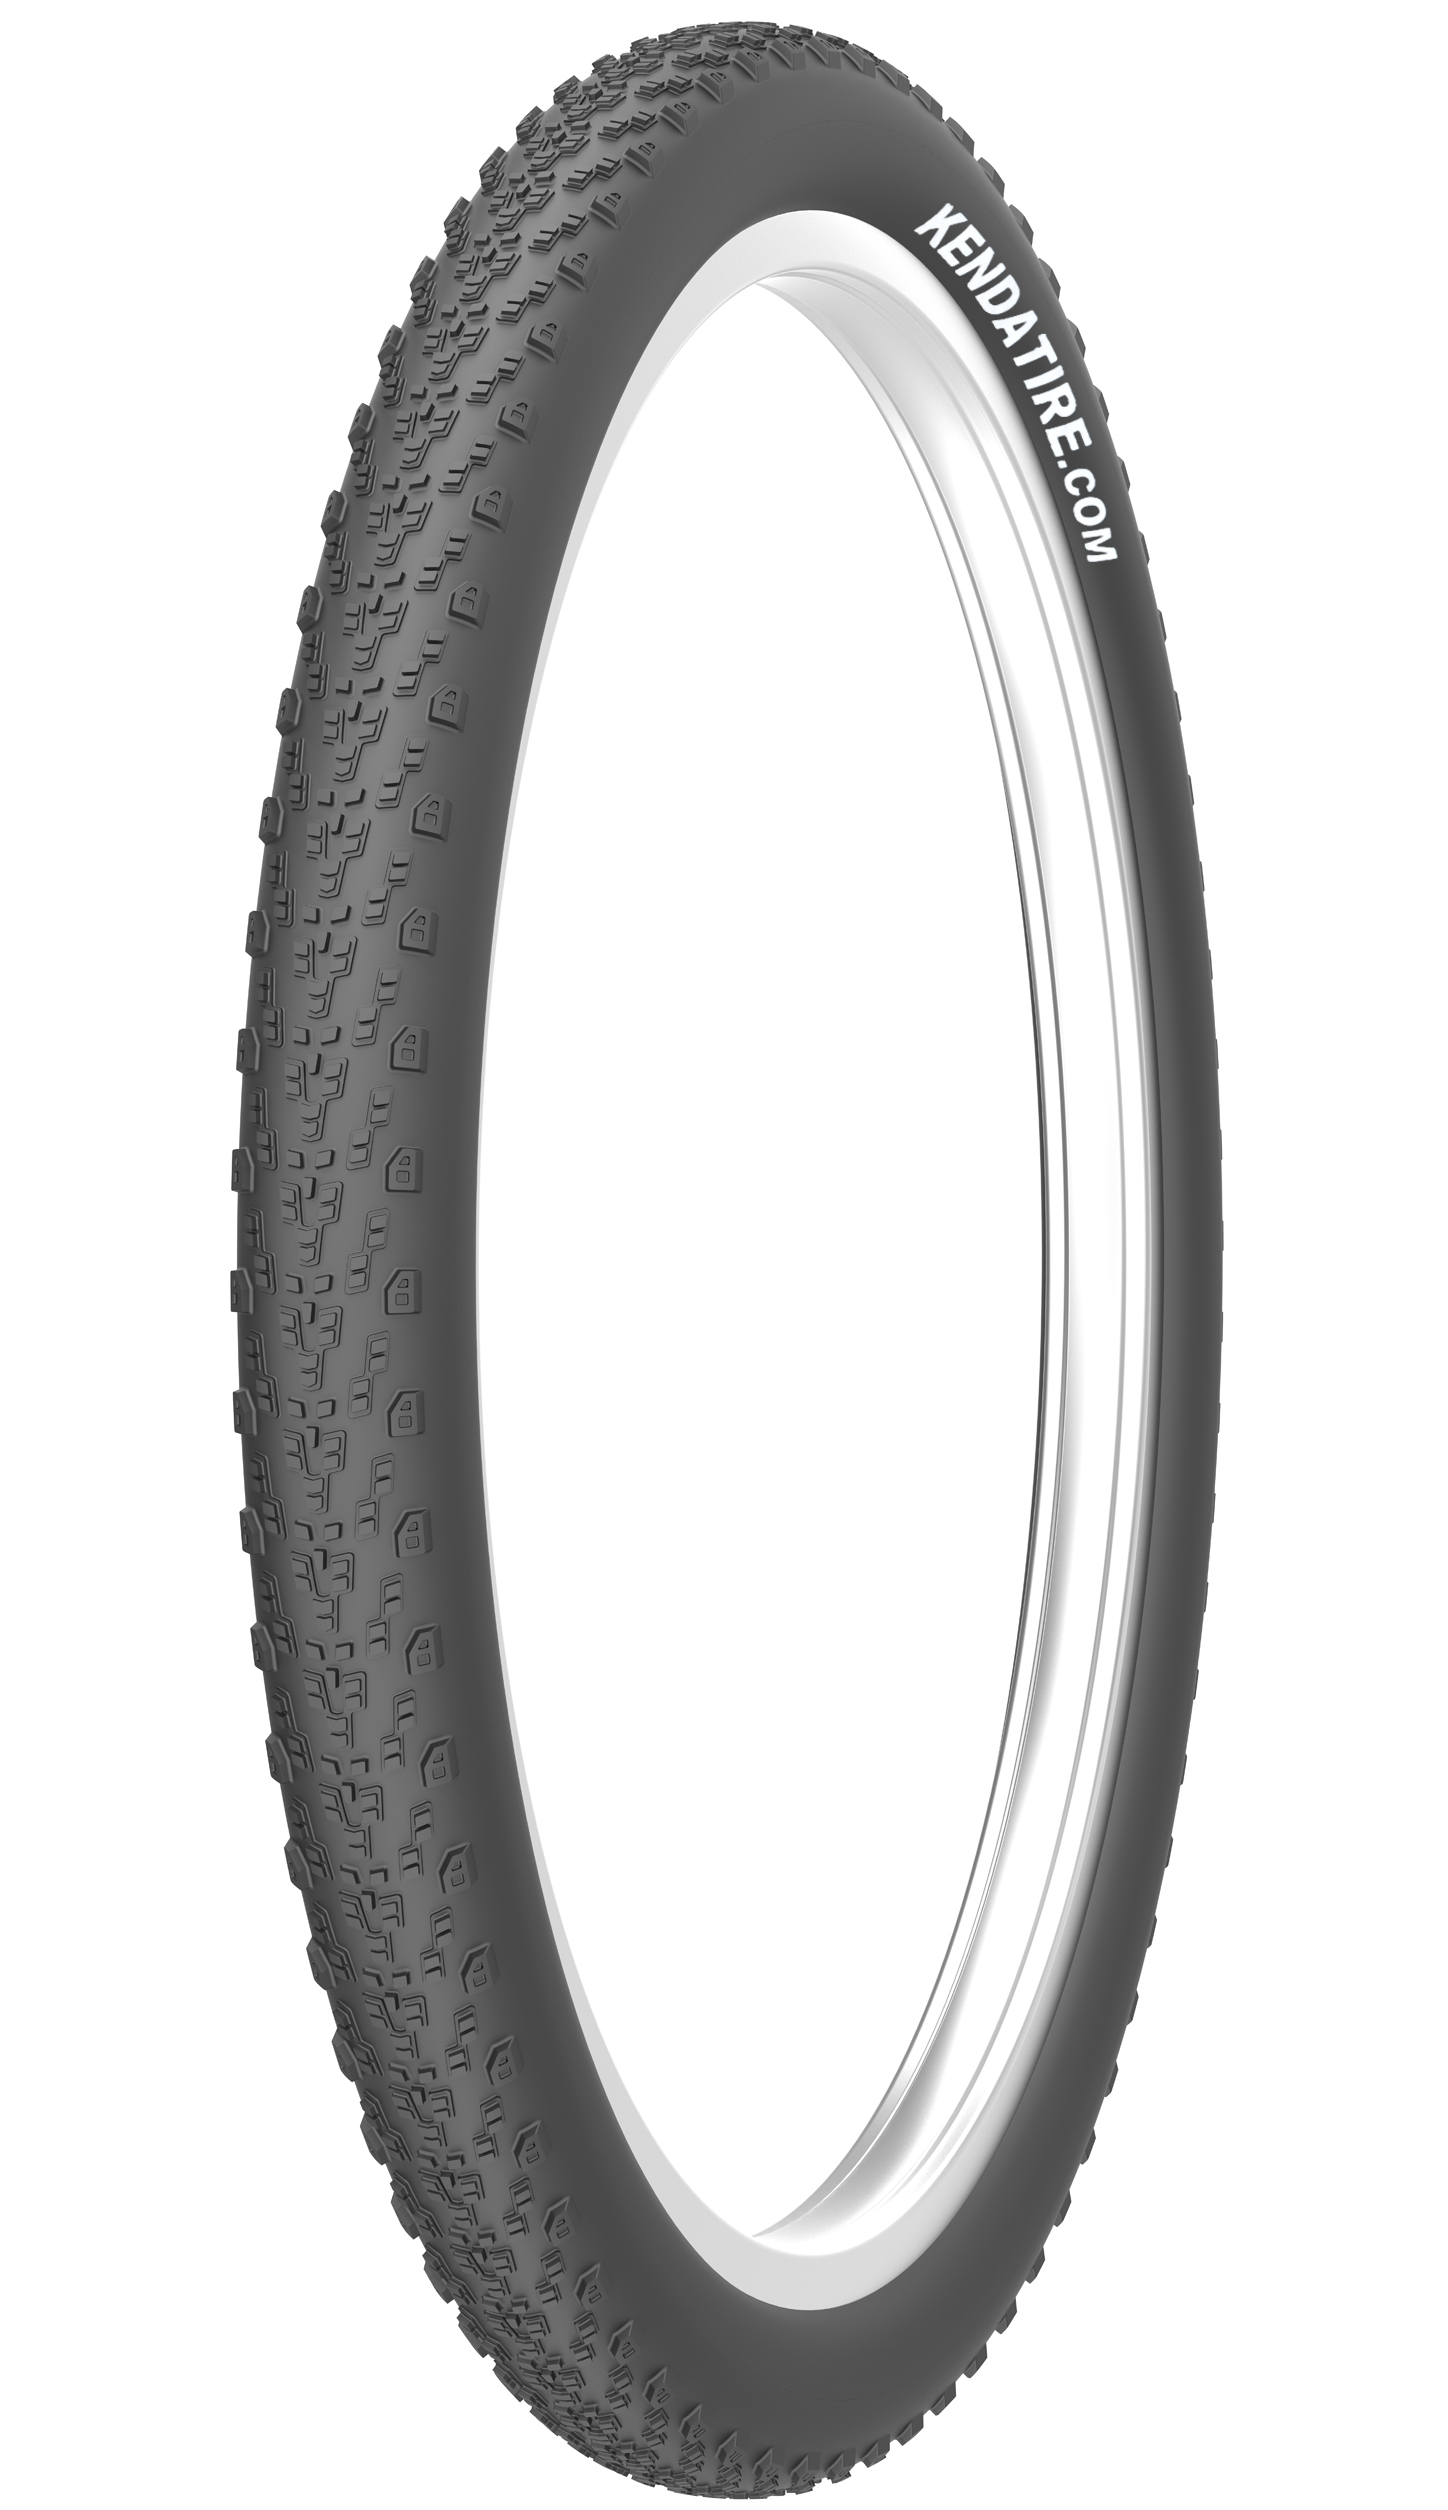 KENDA RUBBER INDUSTRIAL CO., LTD.-XC Mountain Bike Tire